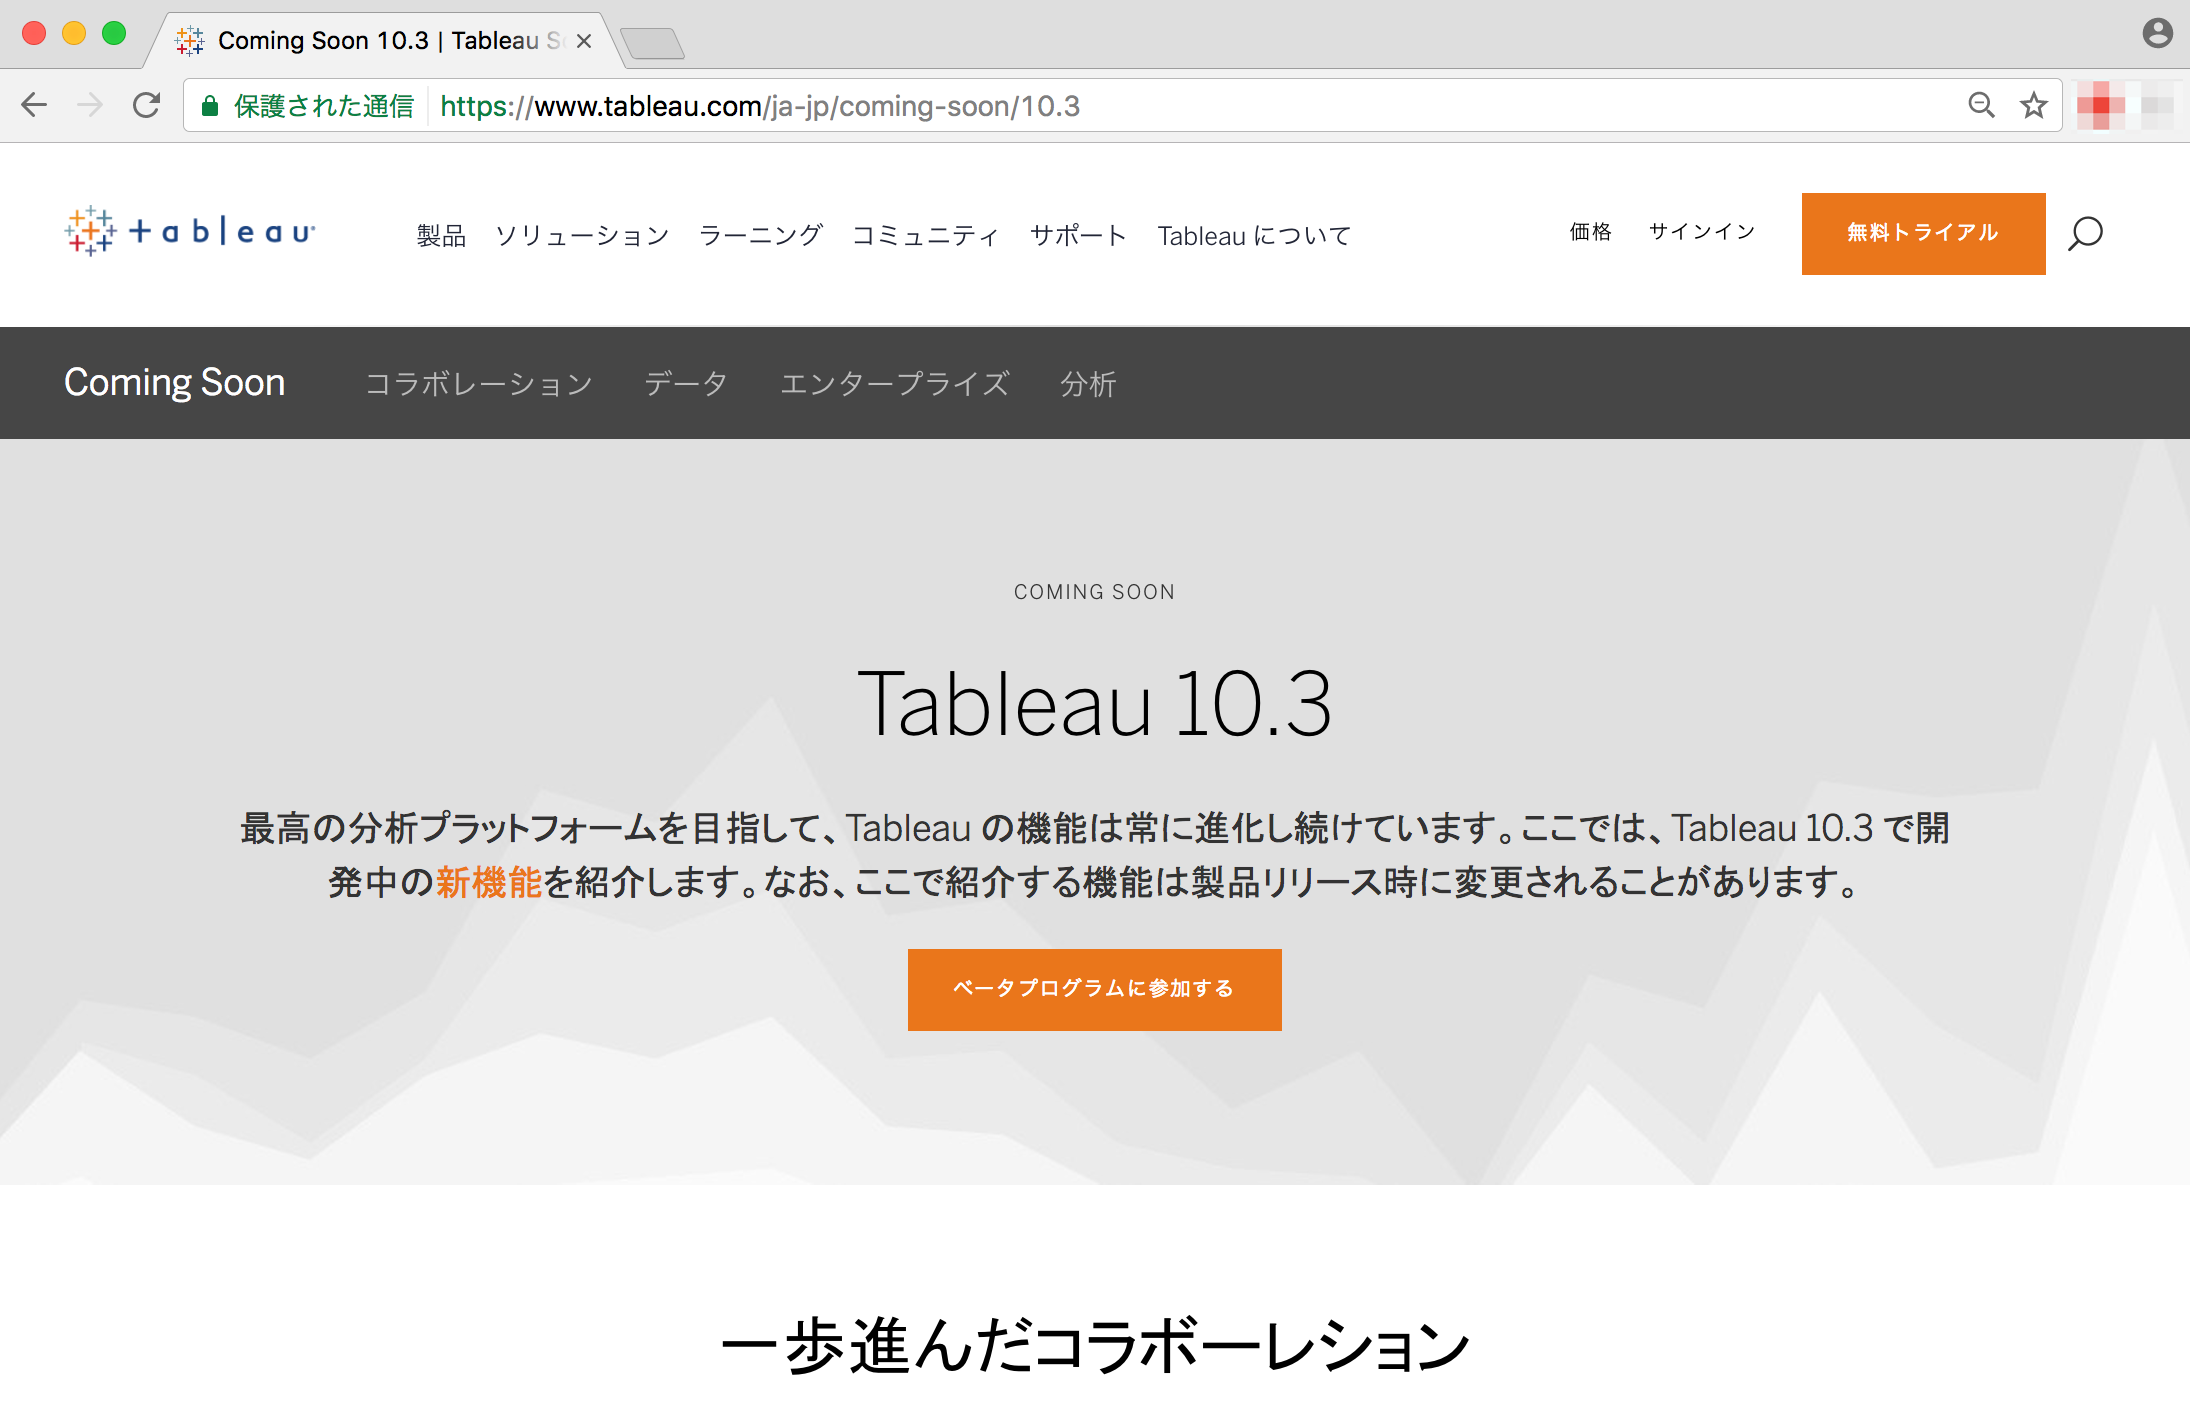 tableau103-new-features